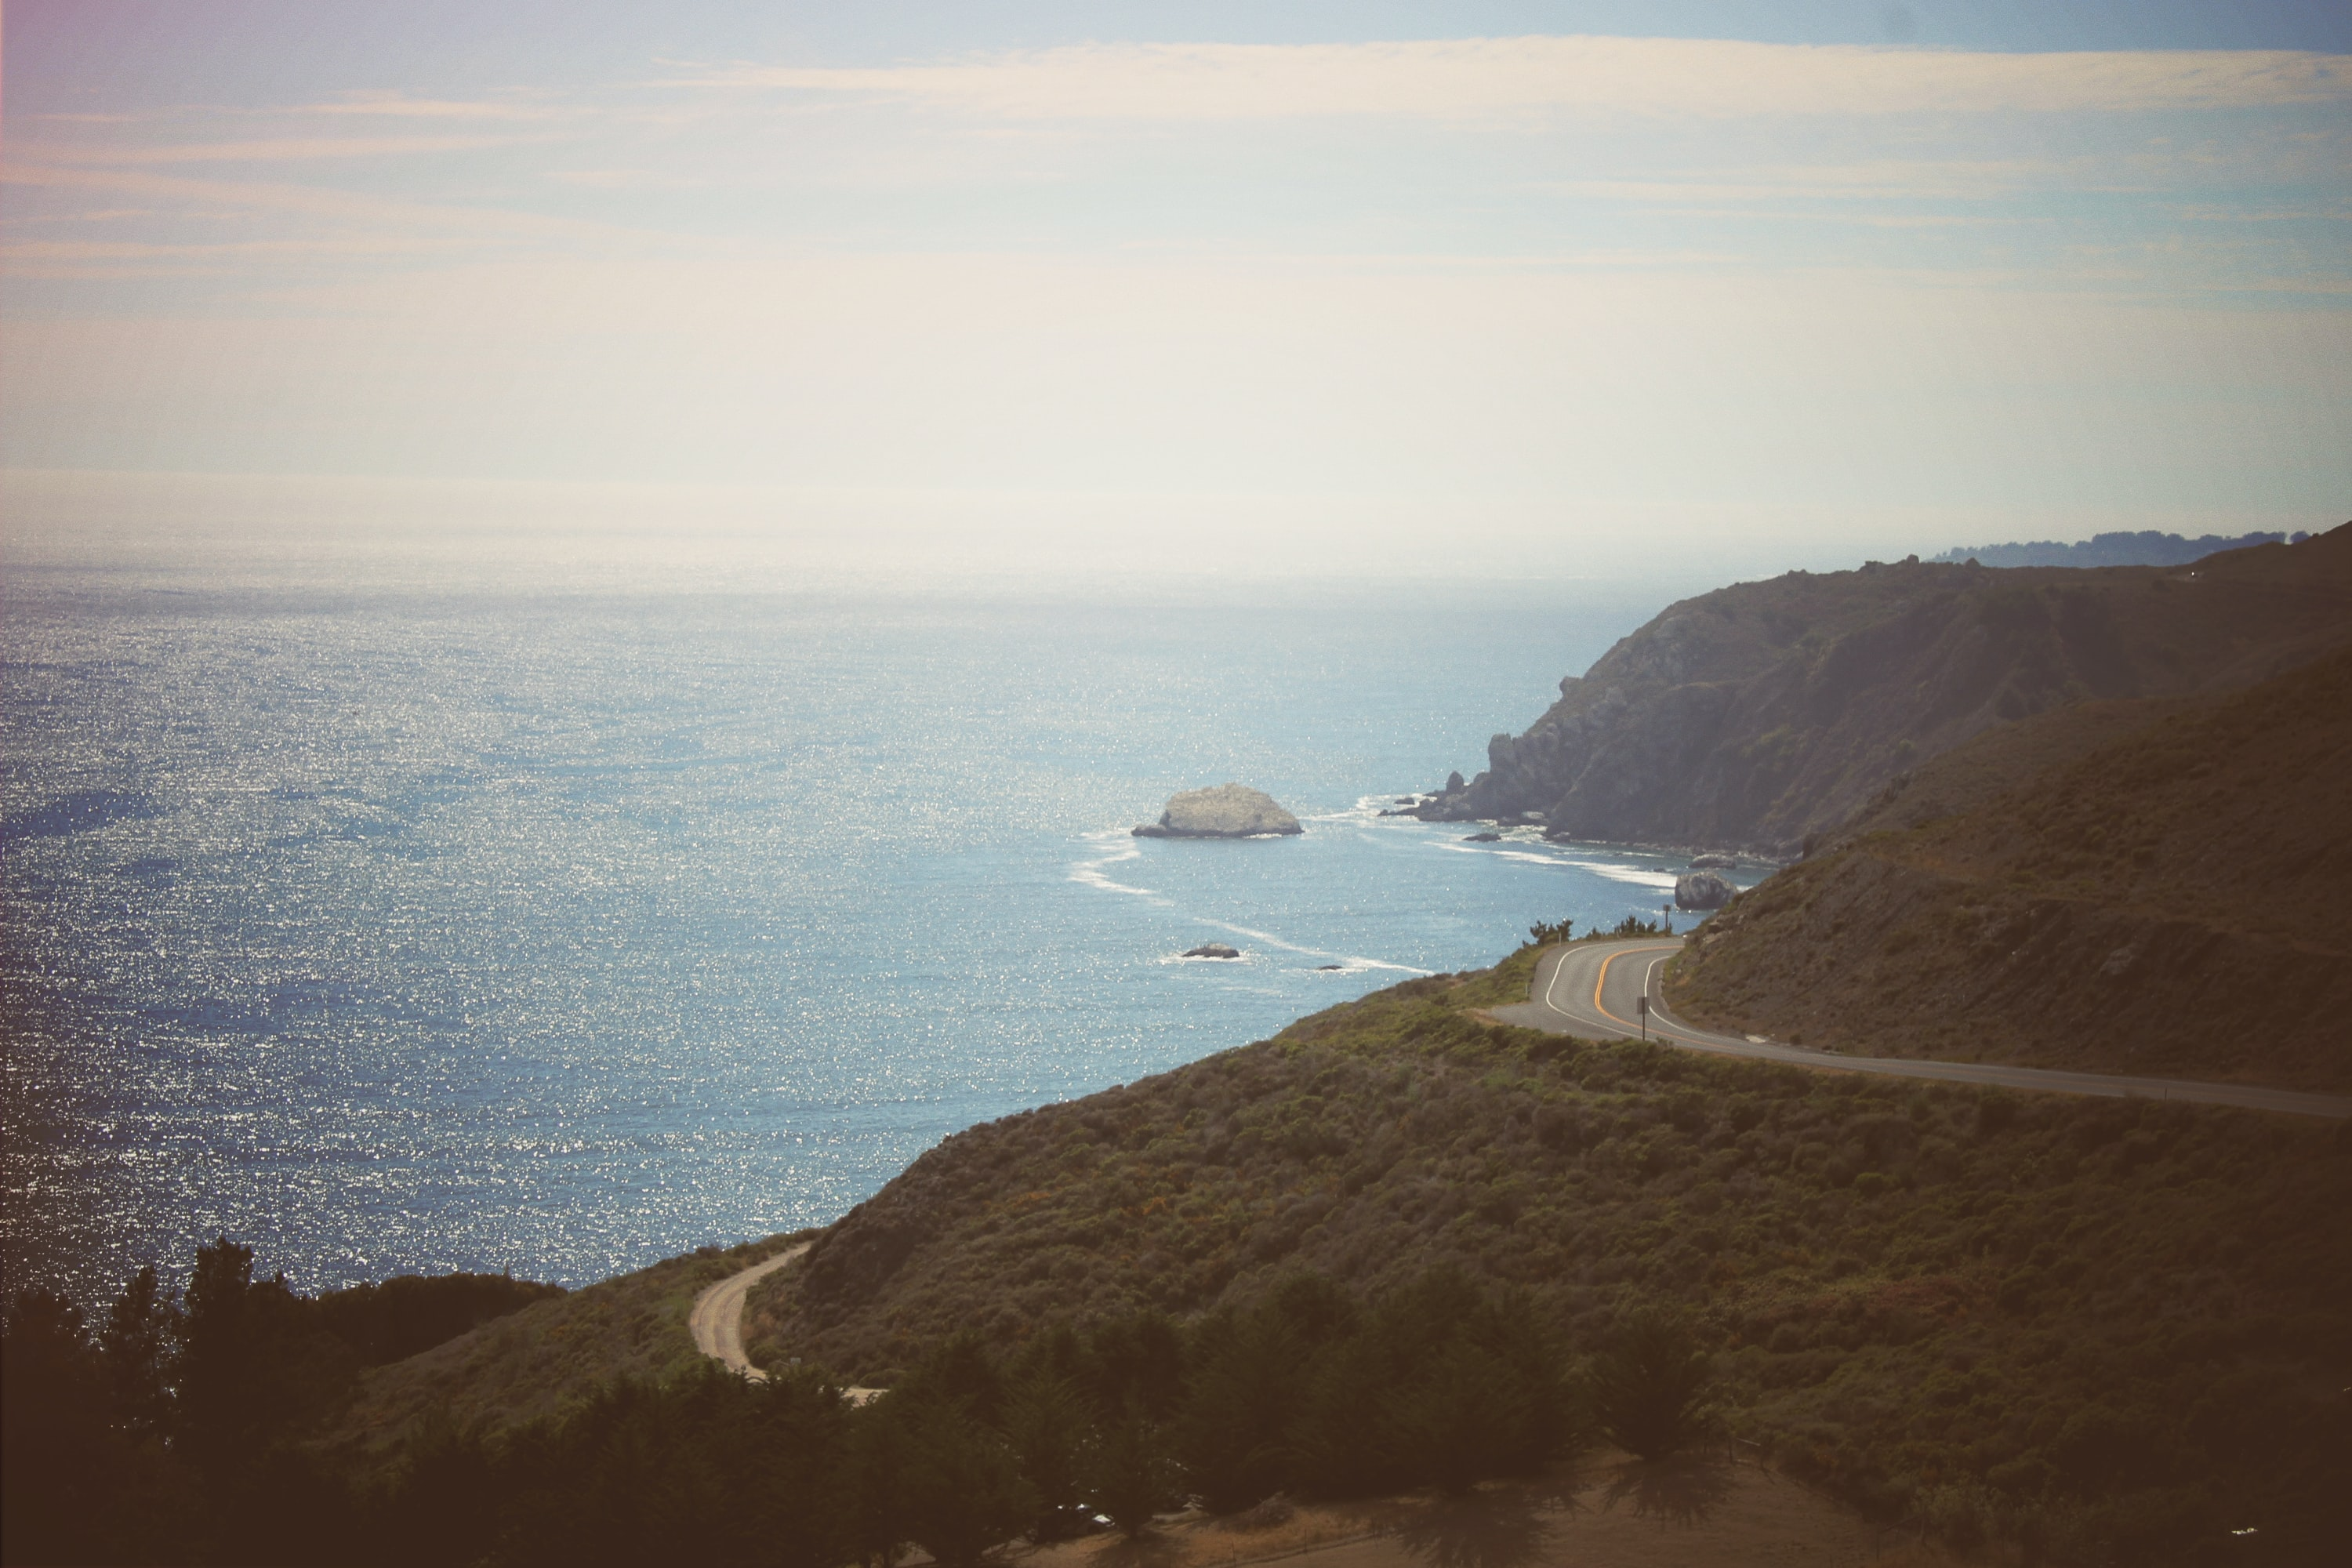 Drove view of a road winding around a mountain by the coast